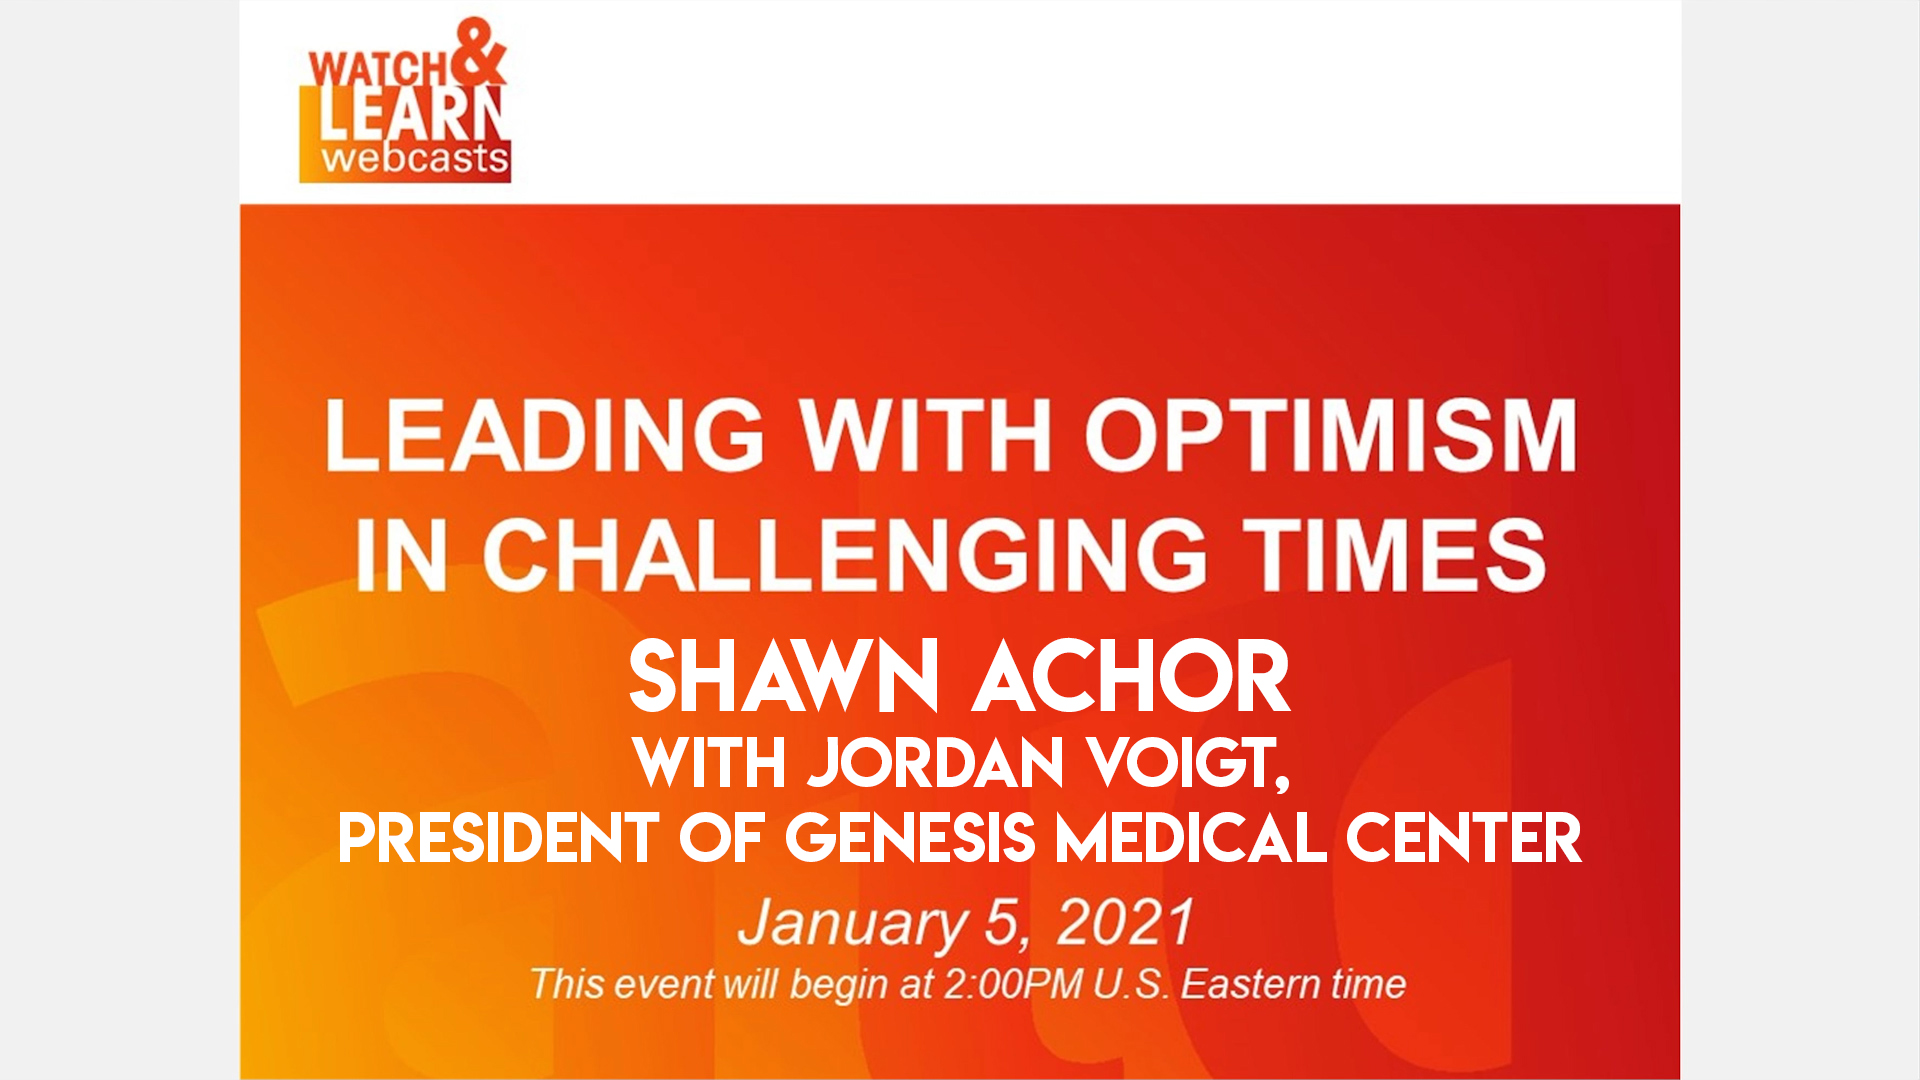 ATD Webinar - Leading with Optimism in Challenging Times